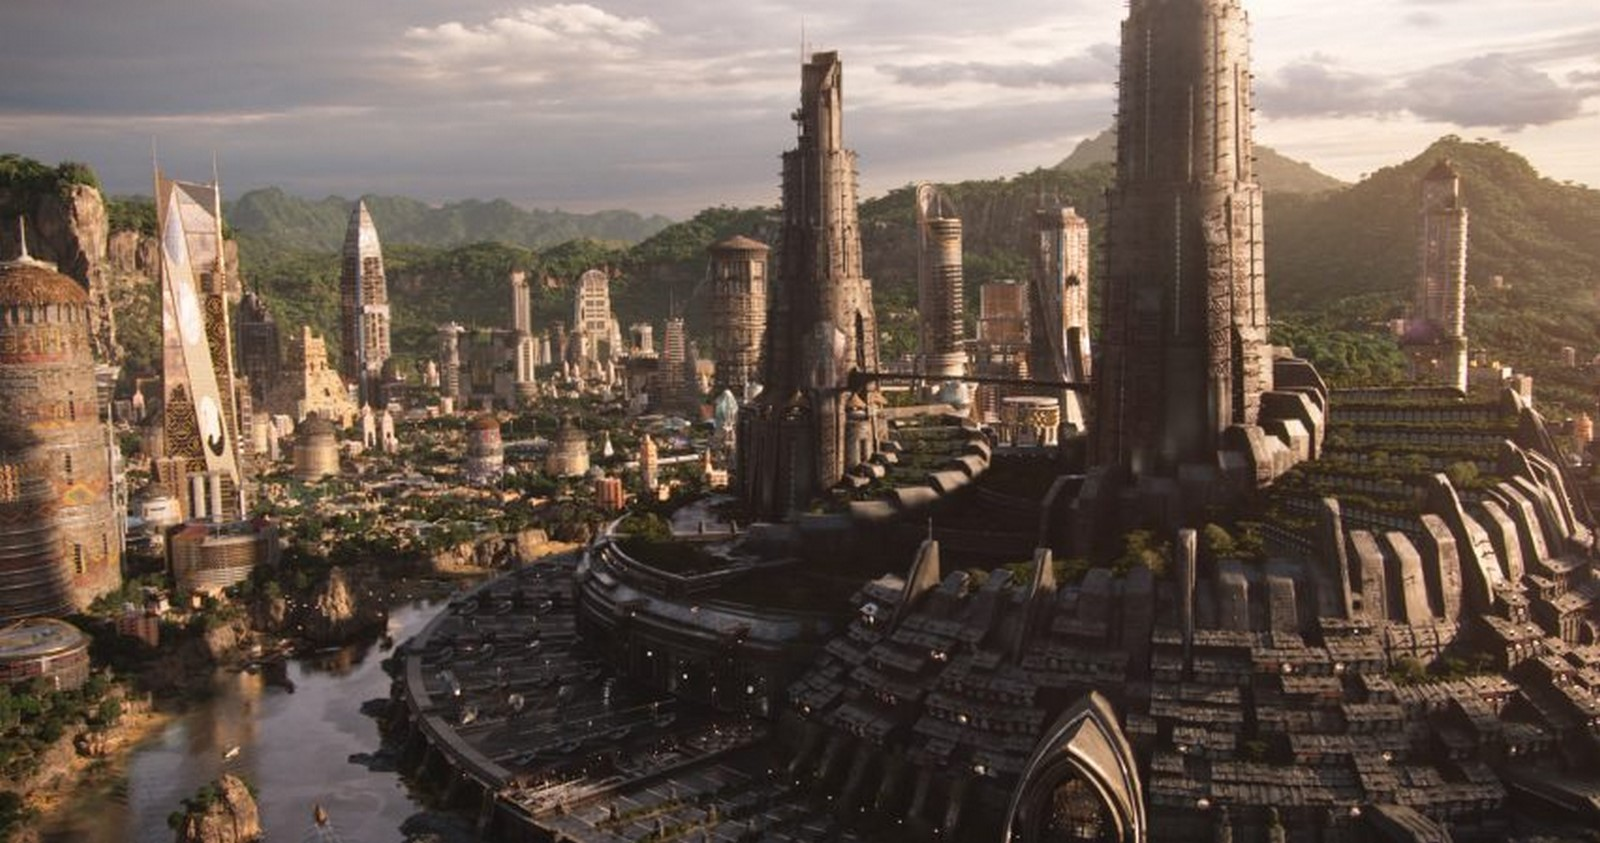 How can architecture in Sci-fi movies inspires today's architects - Sheet2